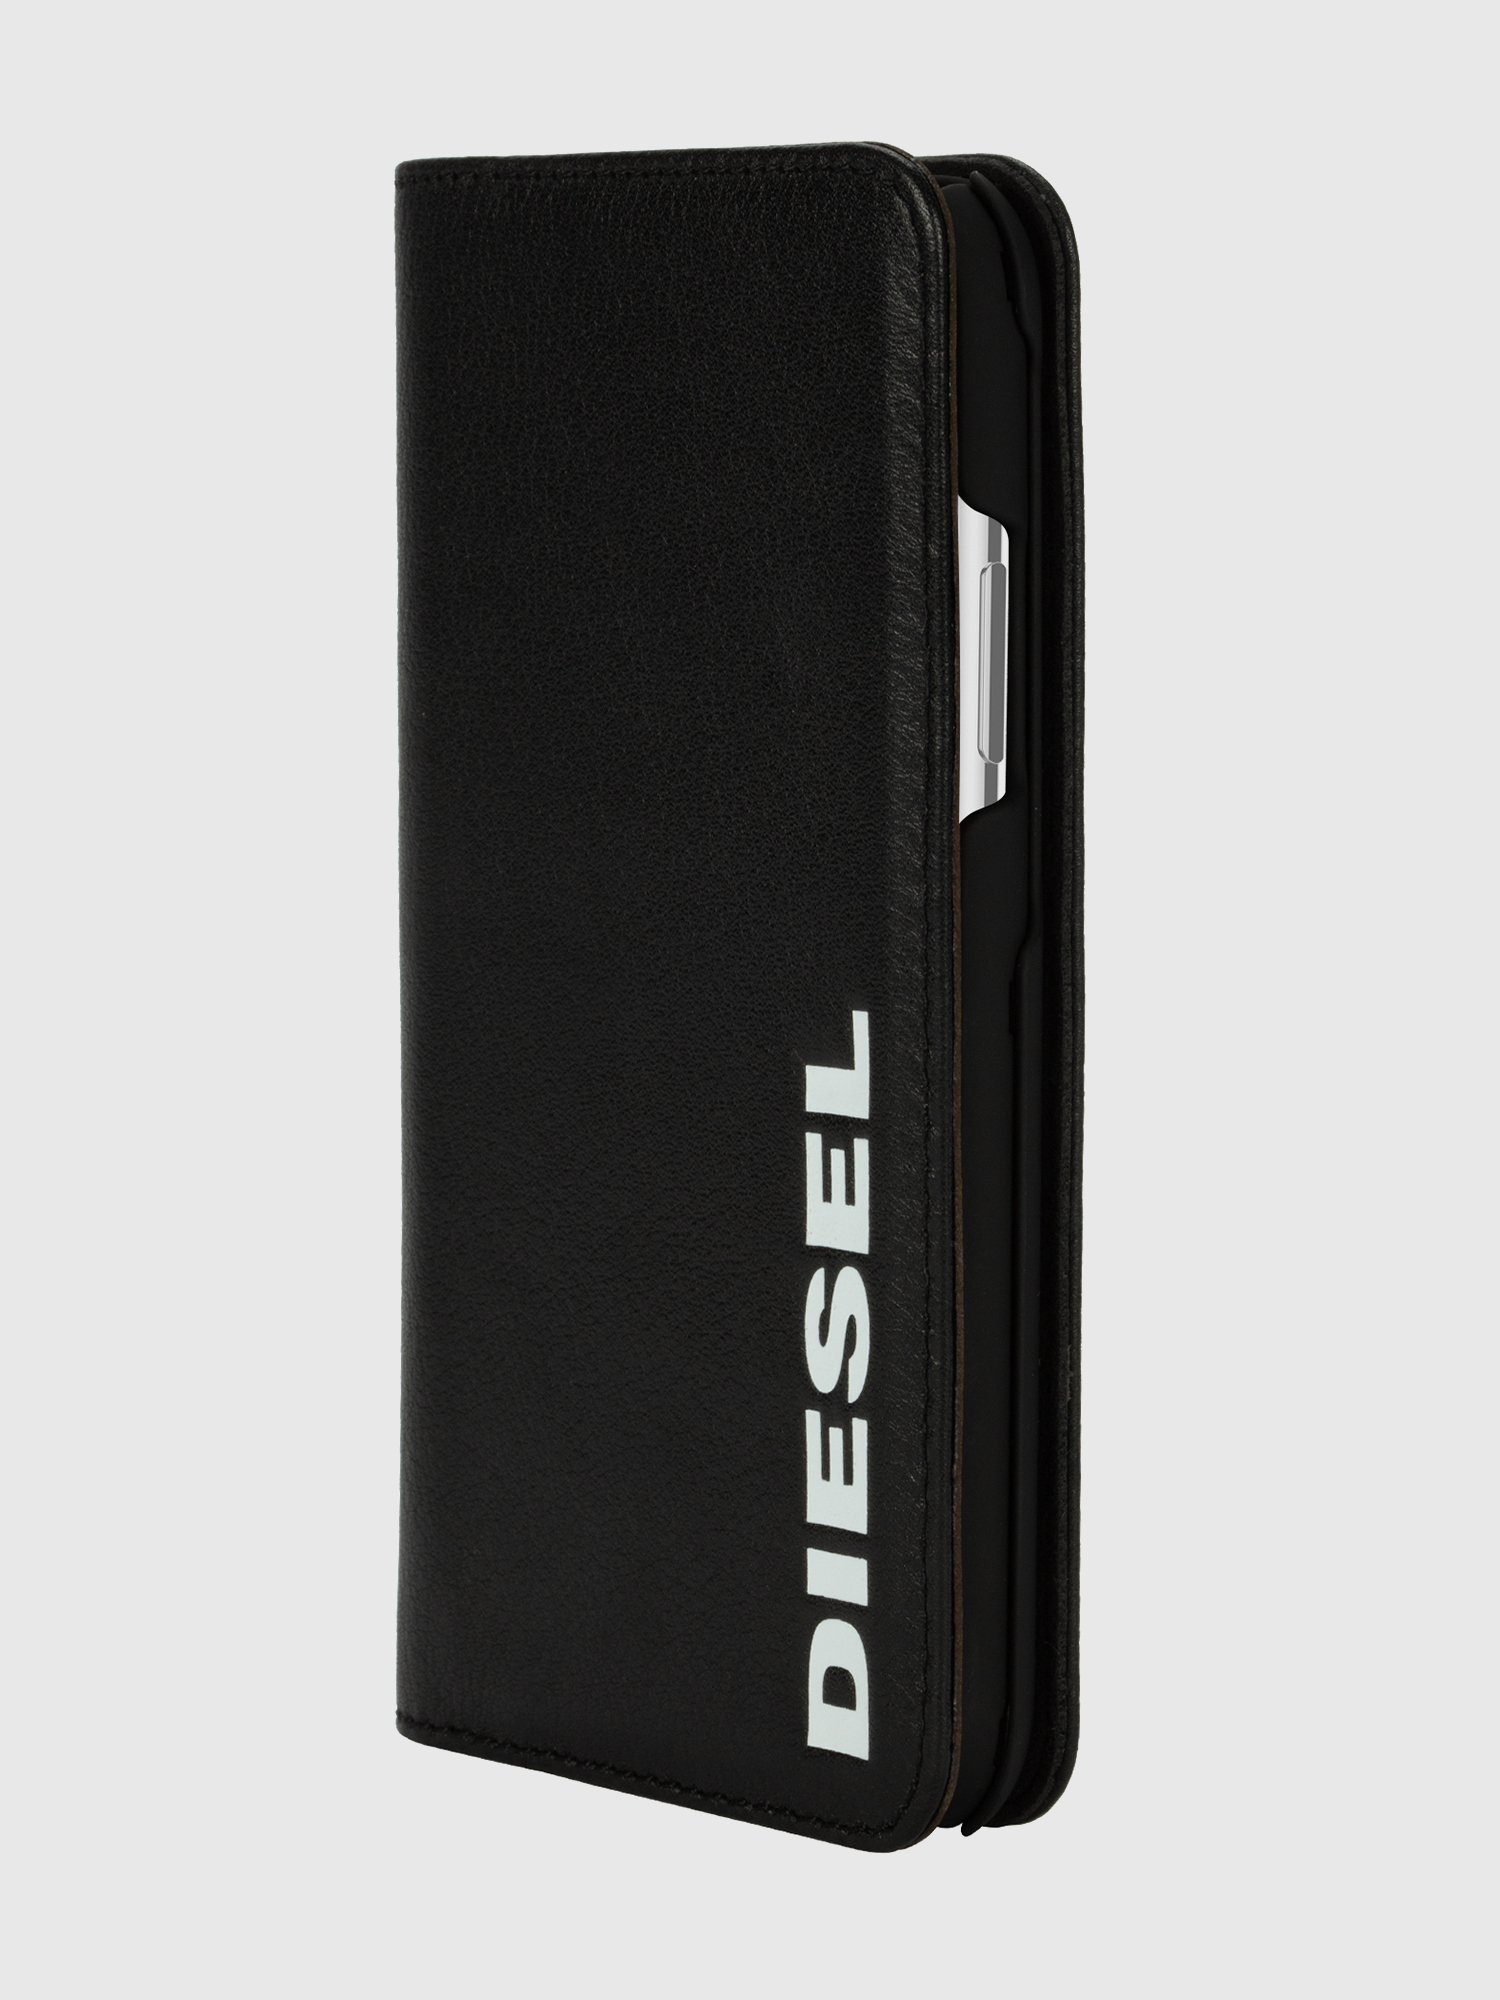 Diesel - DIESEL 2-IN-1 FOLIO CASE FOR IPHONE XS & IPHONE X,  - Klappcover - Image 3